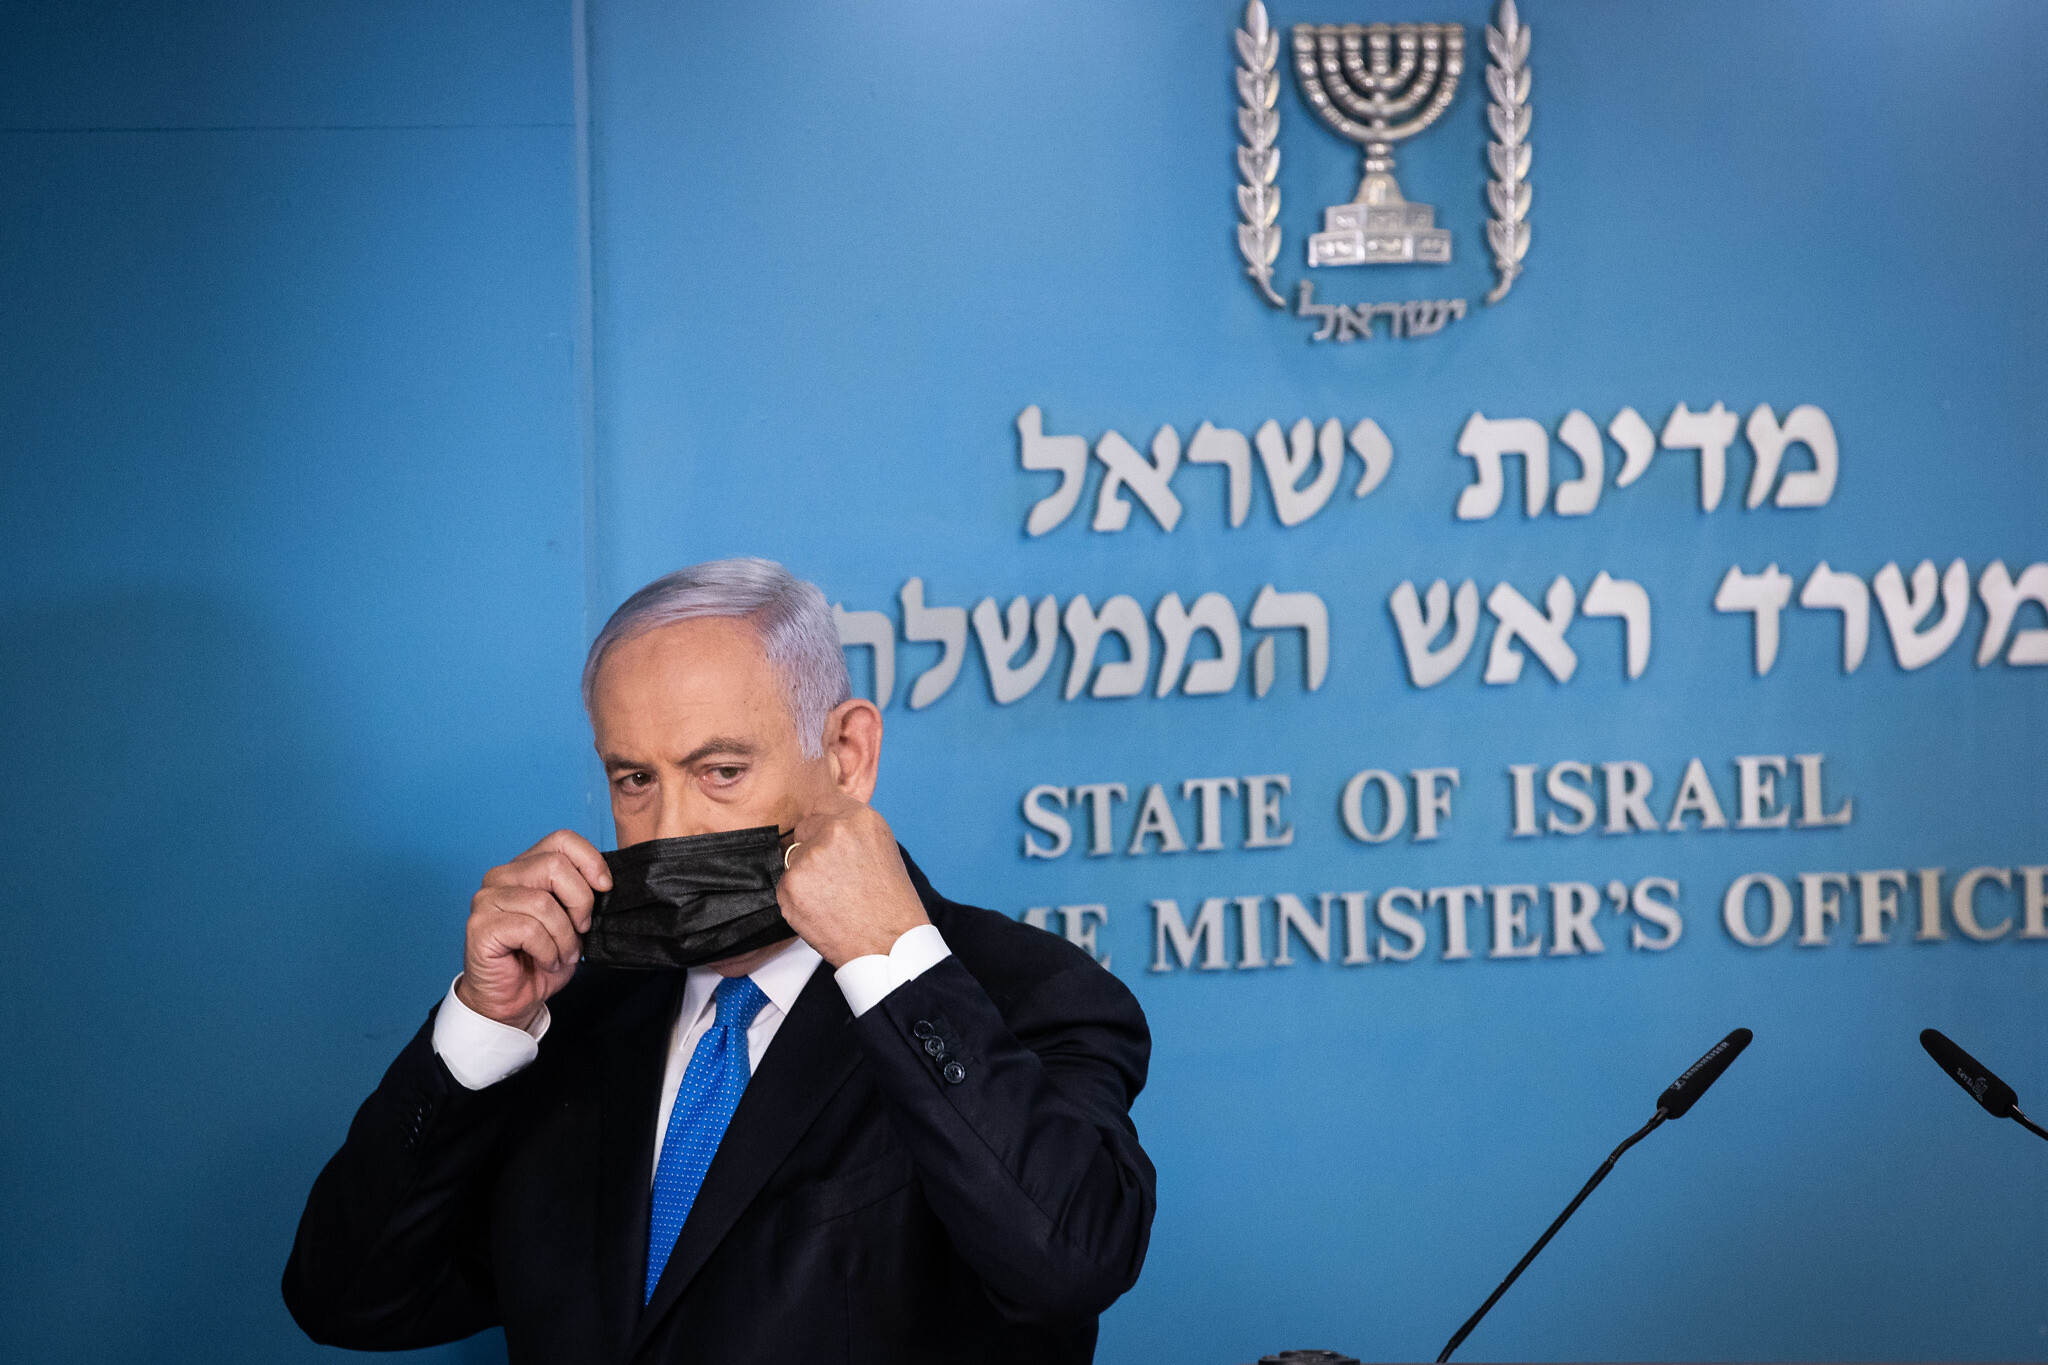 Citing Election Fraud, Netanyahu Claims He Will Topple The New Government Quickly, Even If It Forms